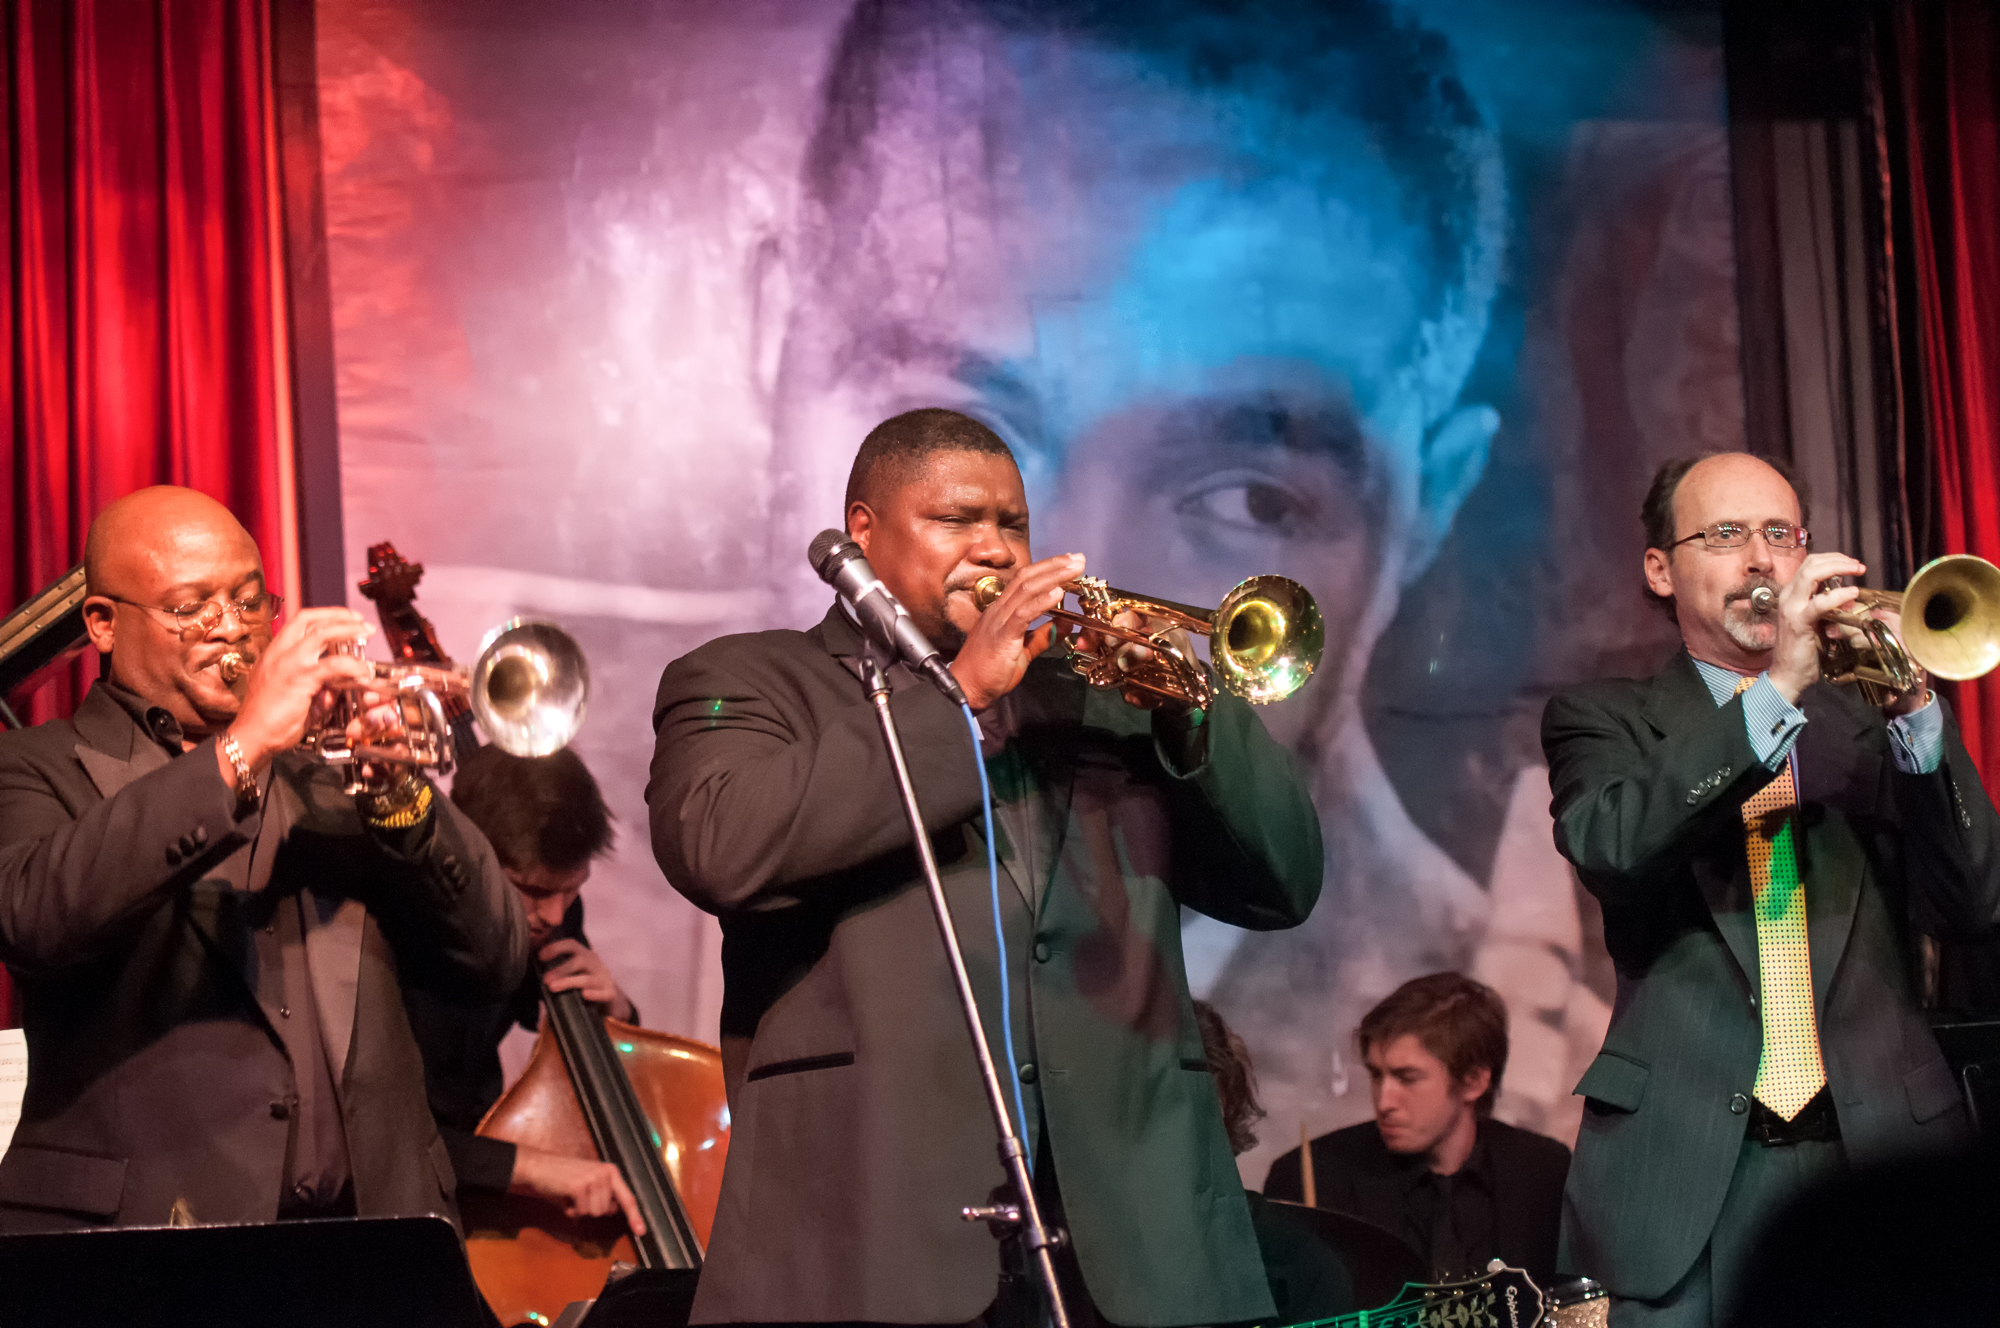 Endre Rice, Wycliffe Gordon and Scott Hall with the Columbia College Jazz Ensemble at the Jazz Showcase in Chicago